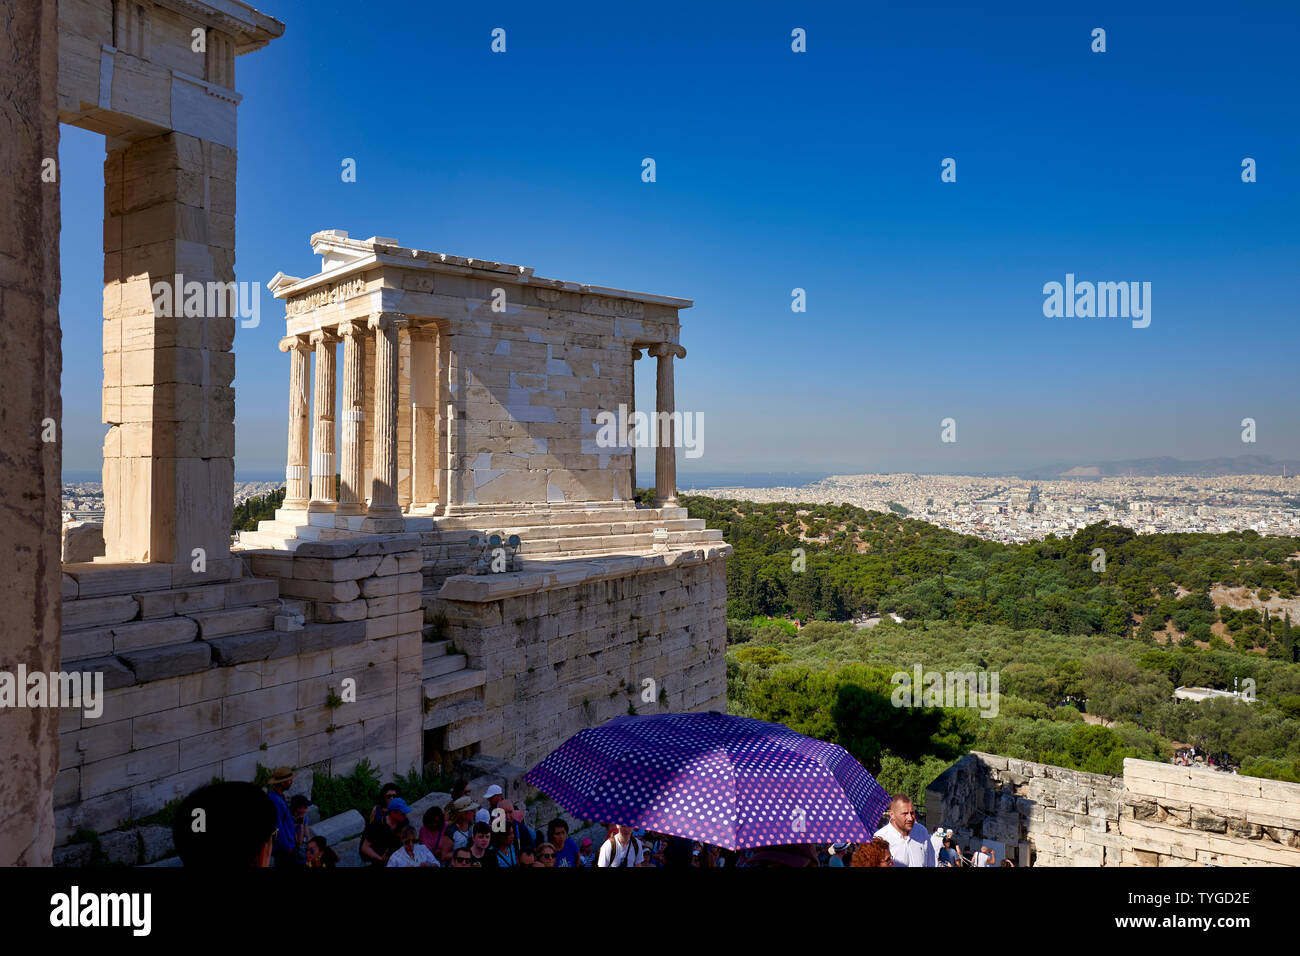 Athens Greece. Propylaea, the gate at the entrance of the Acropolis - Stock Image